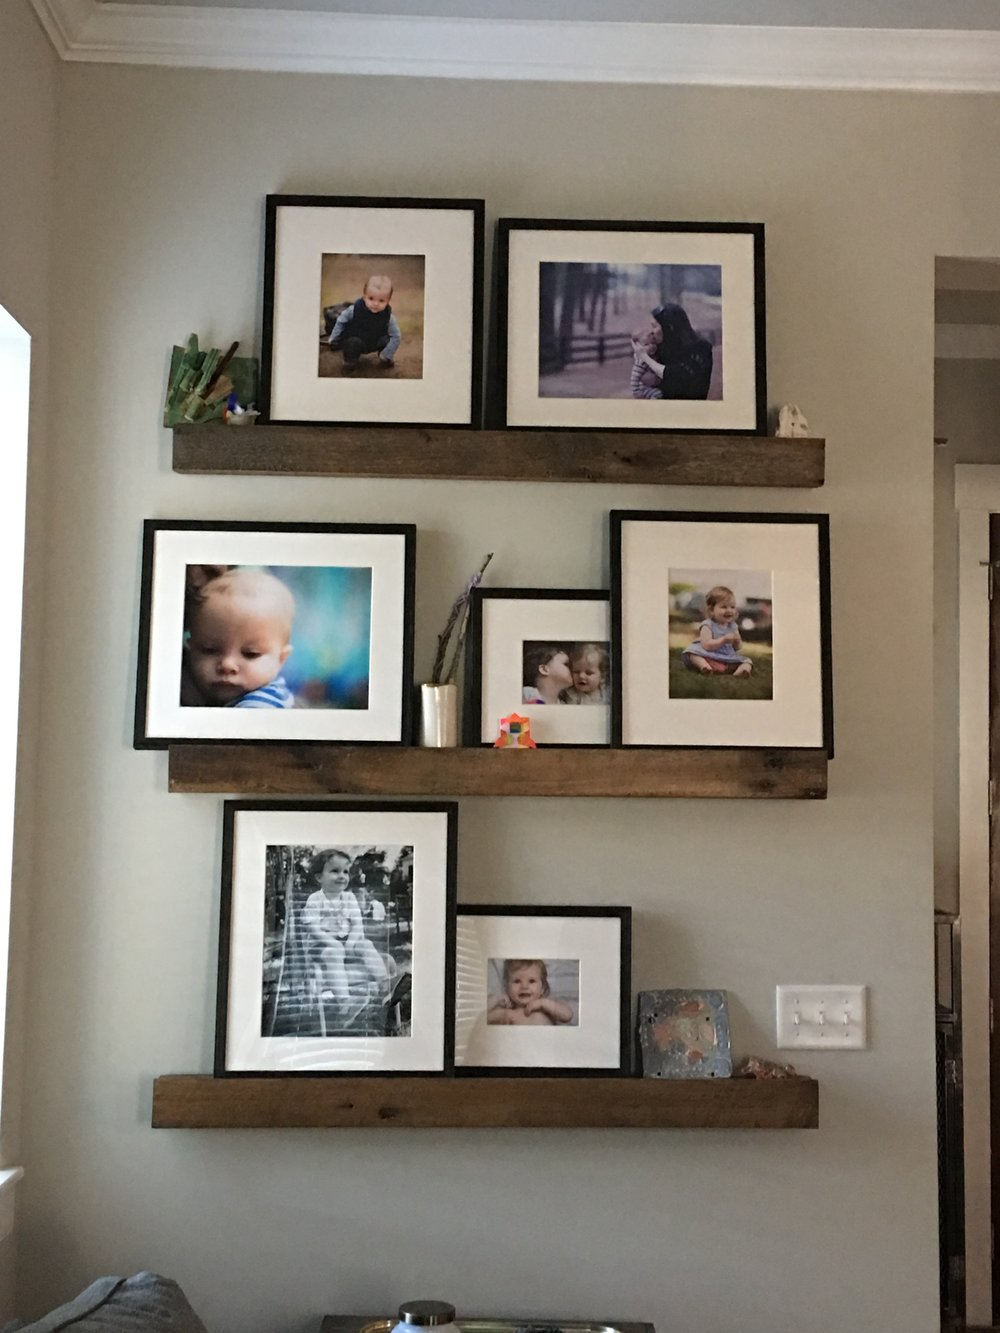 """This spot in our living space has my heart. I had my dad (he's awesome) make these amazing shelves out of barnwood he salvaged. He's been making stuff from reclaimed woods way before it was """"cool"""" ;)I love it!    On the shelves are photos Matt has taken and art our kids have made, from ceramic figures to sticks wrapped in yarn.    I love these shelves so much that I'm having another one made."""